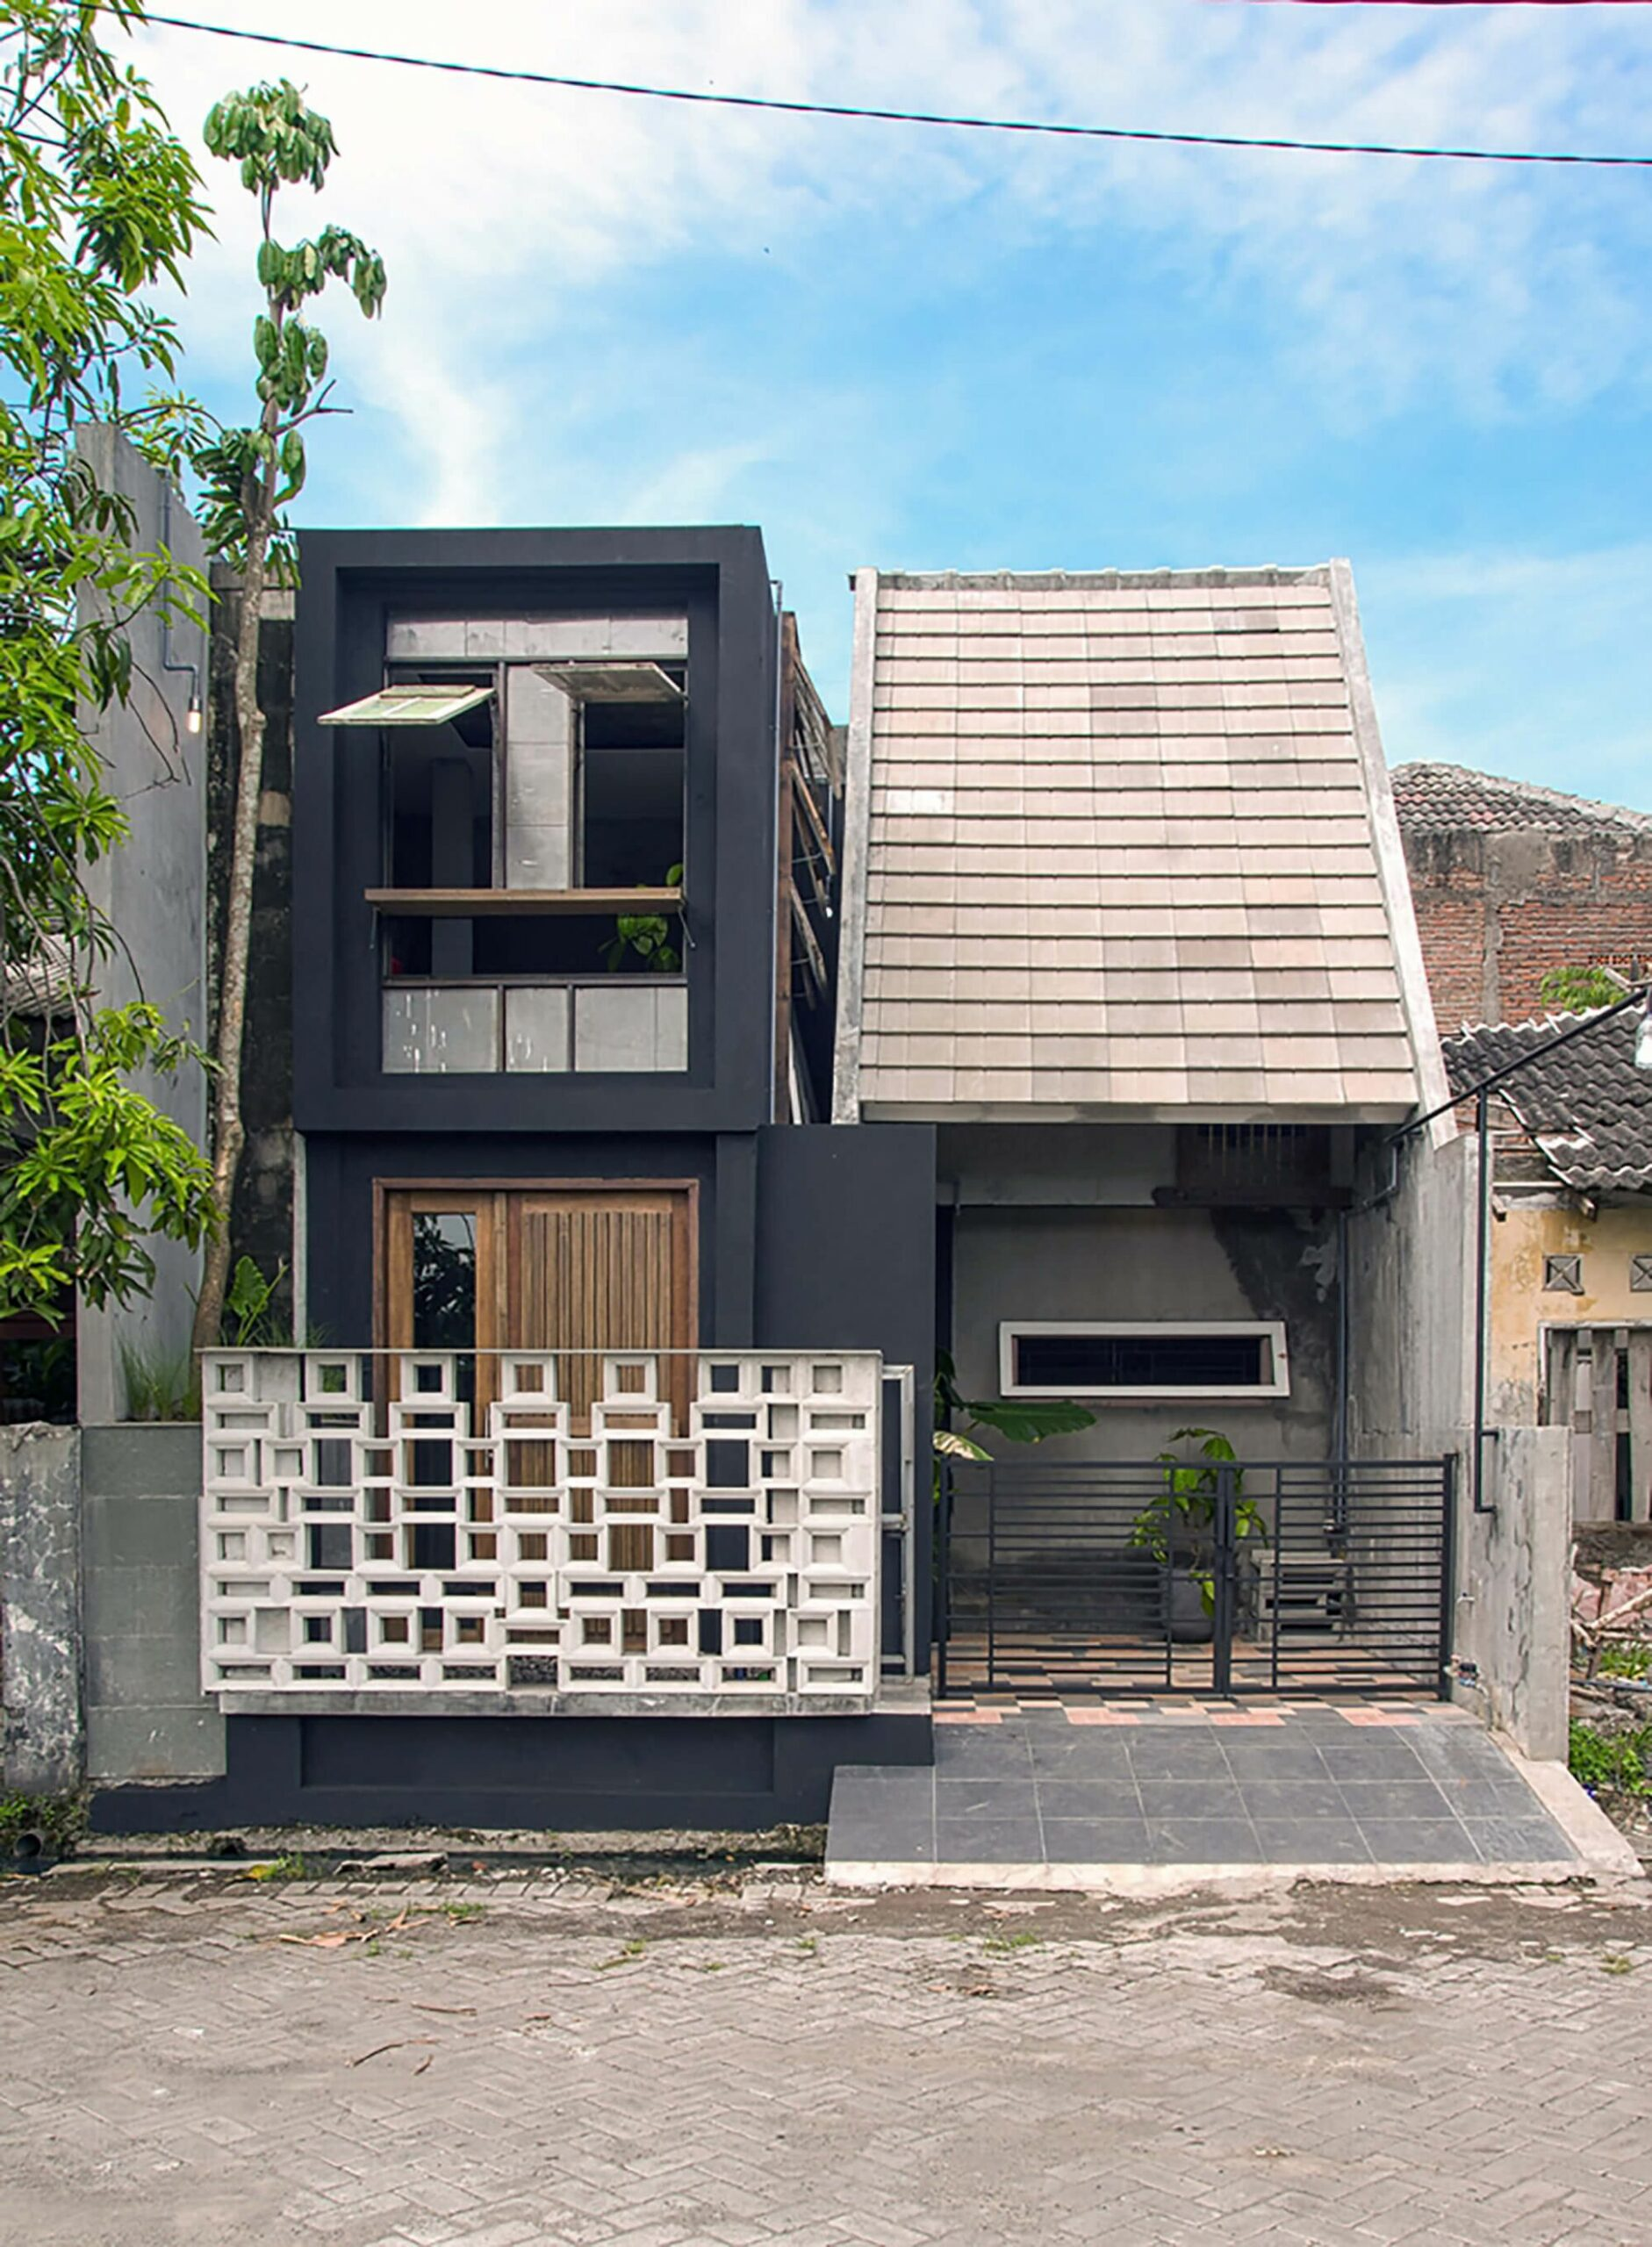 Humble Homes - Tiny House Plans and Articles on Small Space Living - tiny house indonesia